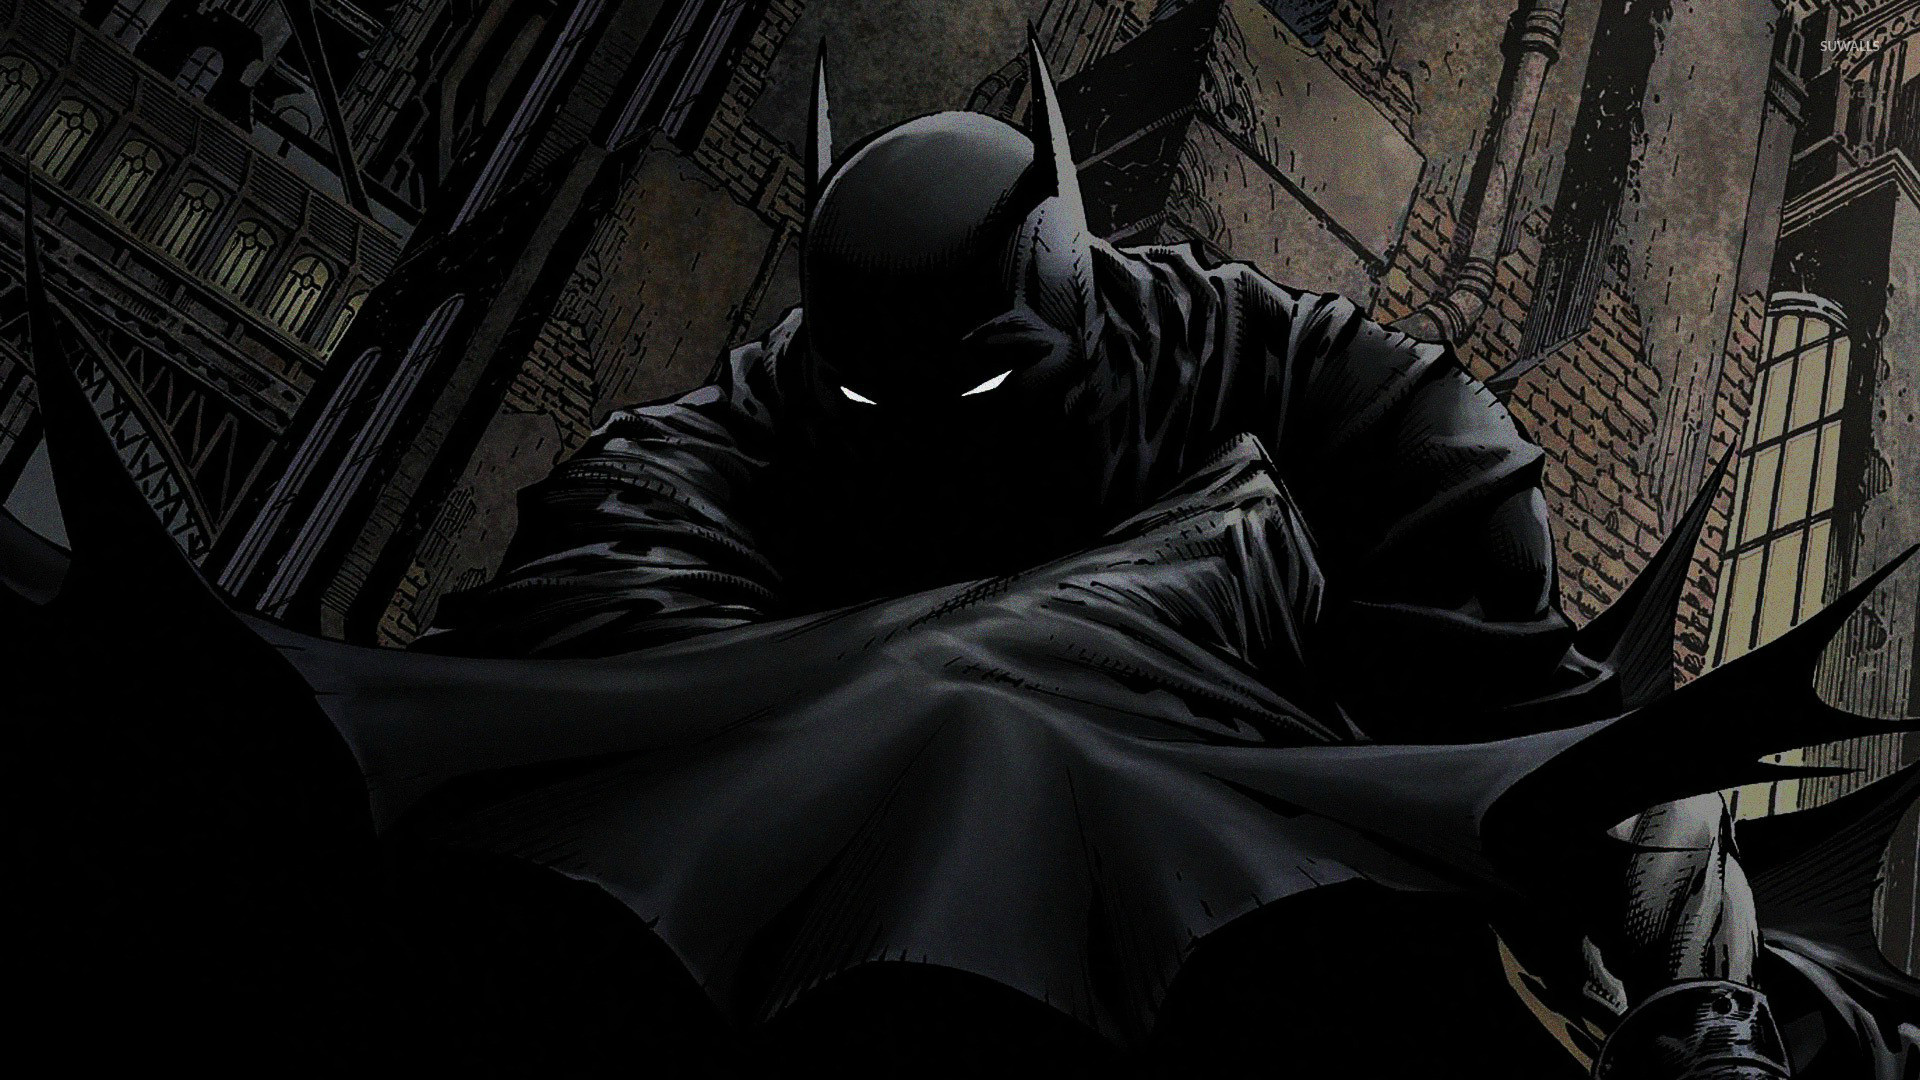 3840x2160 0 batman begins wallpaper batman comics hd wallpapers desktop backgrounds mobile